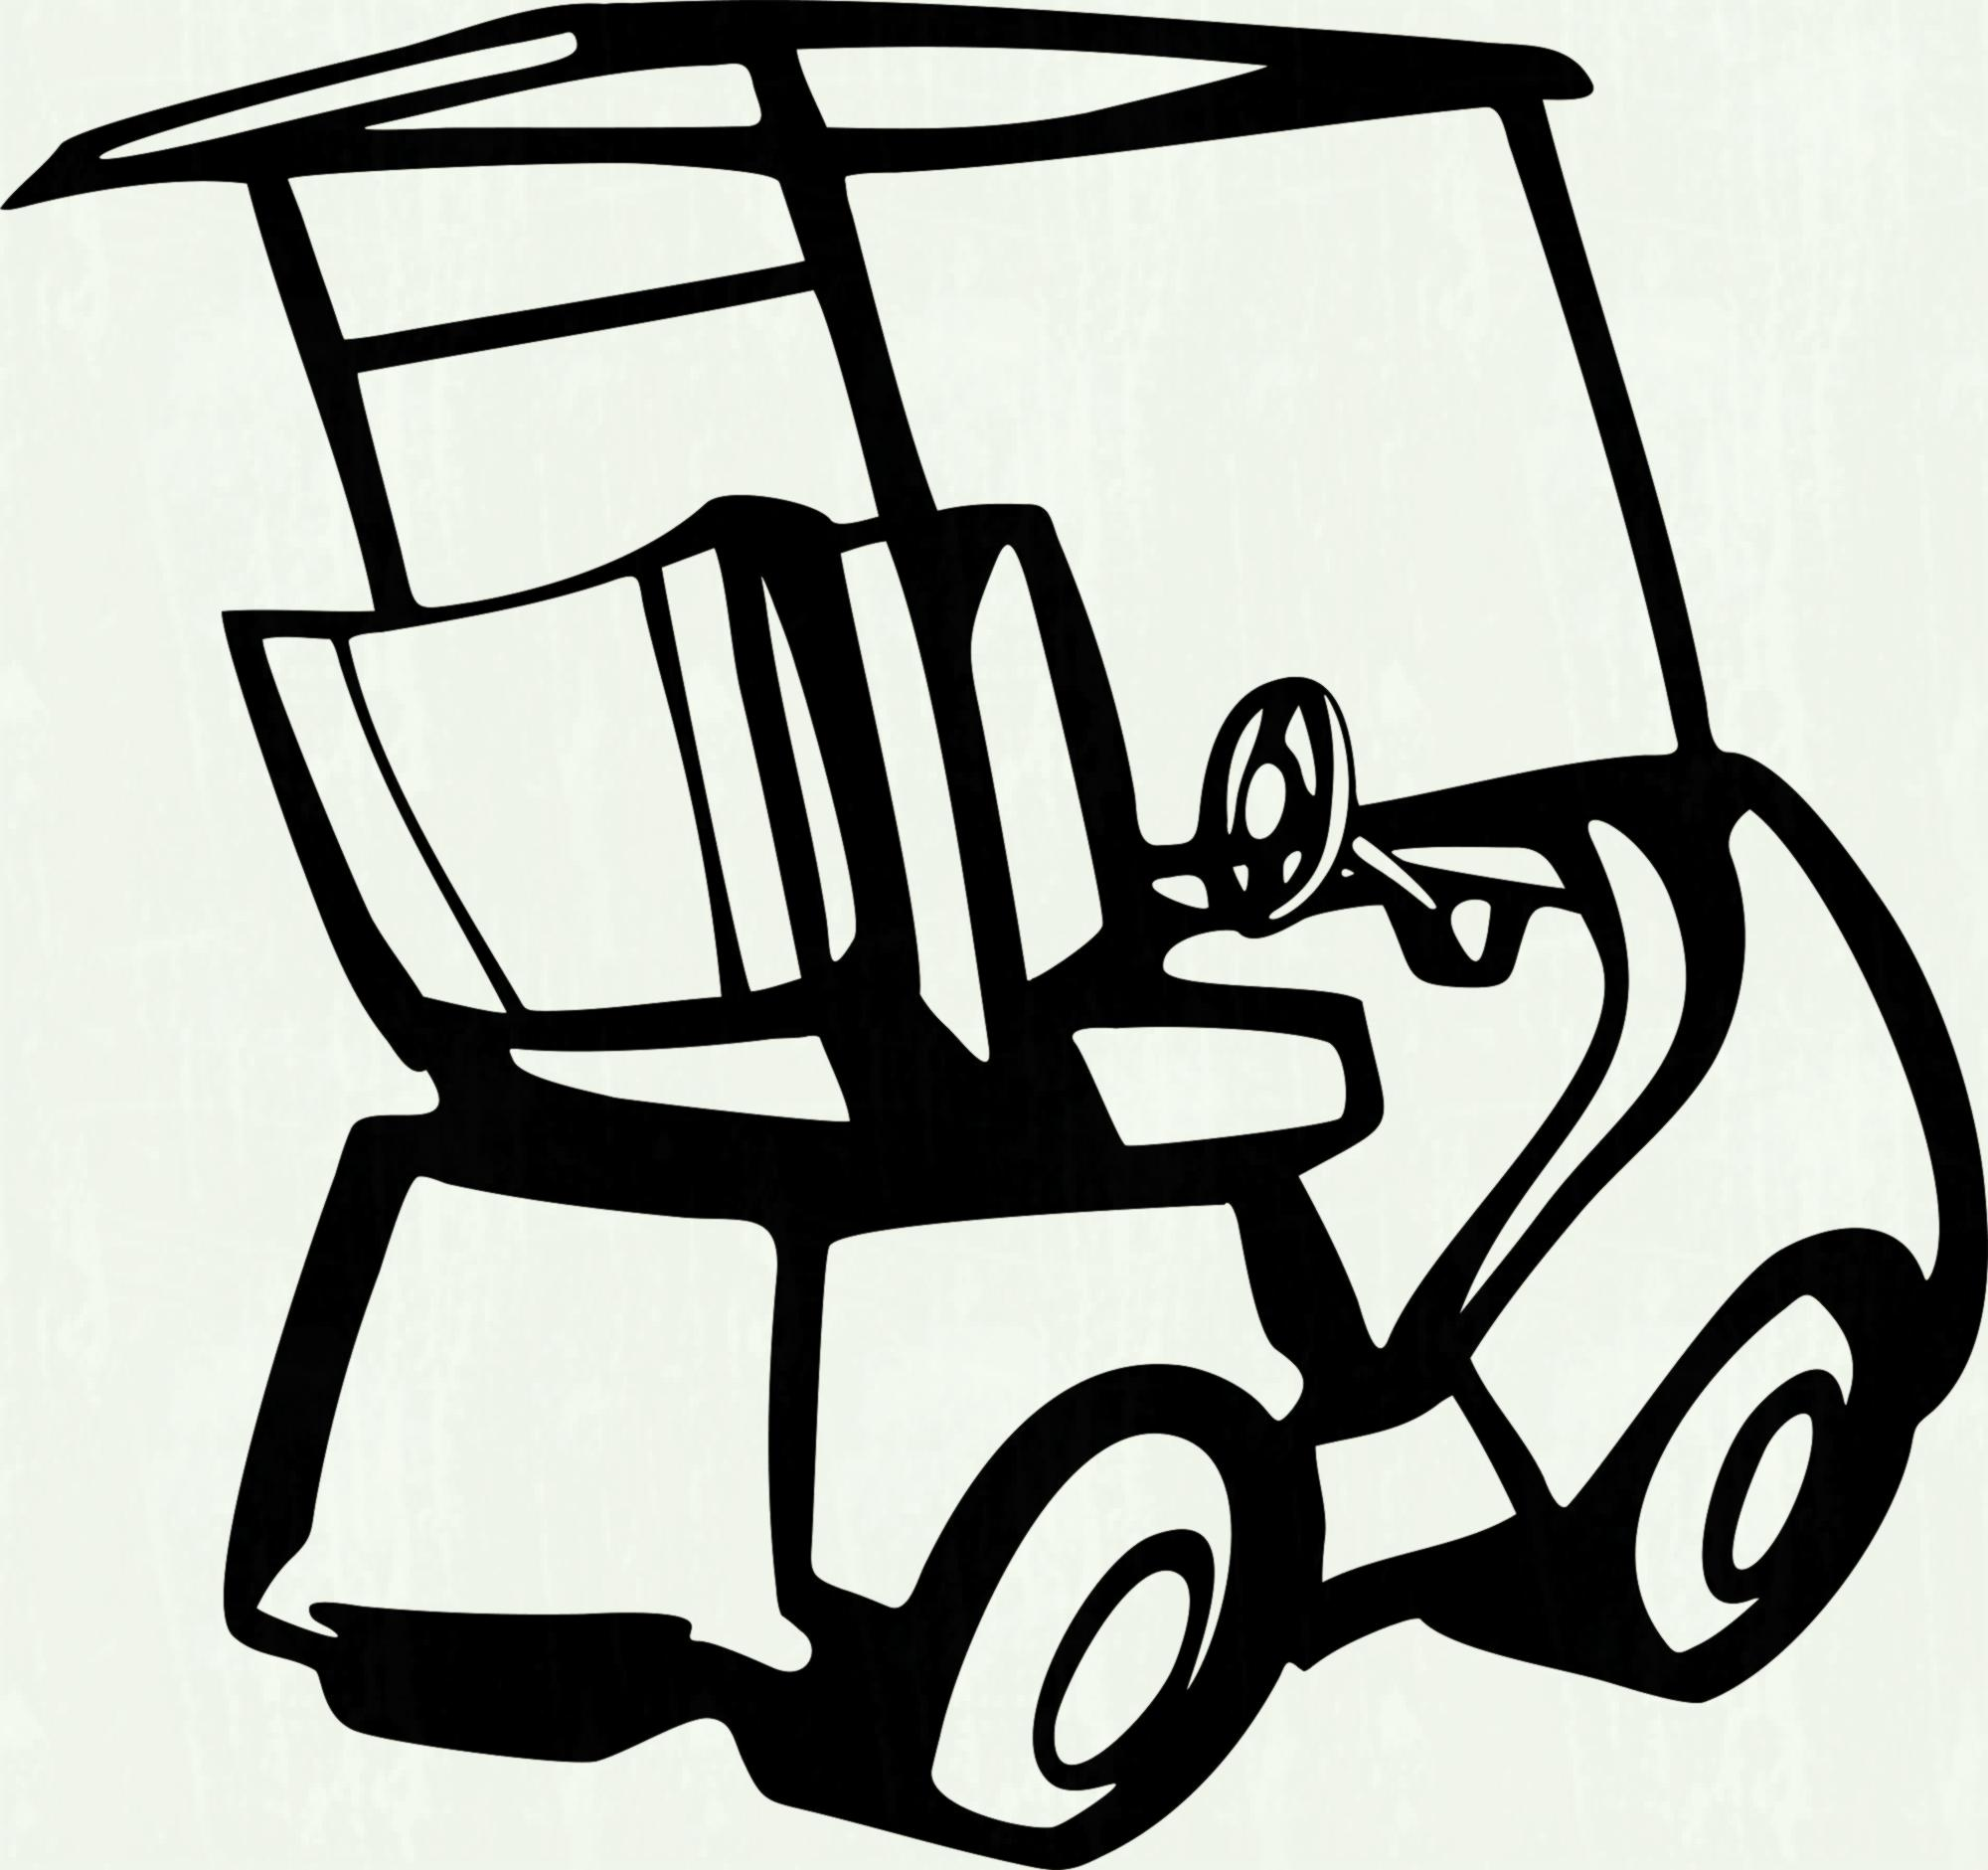 Cart clipart black and white. Pencil in color library